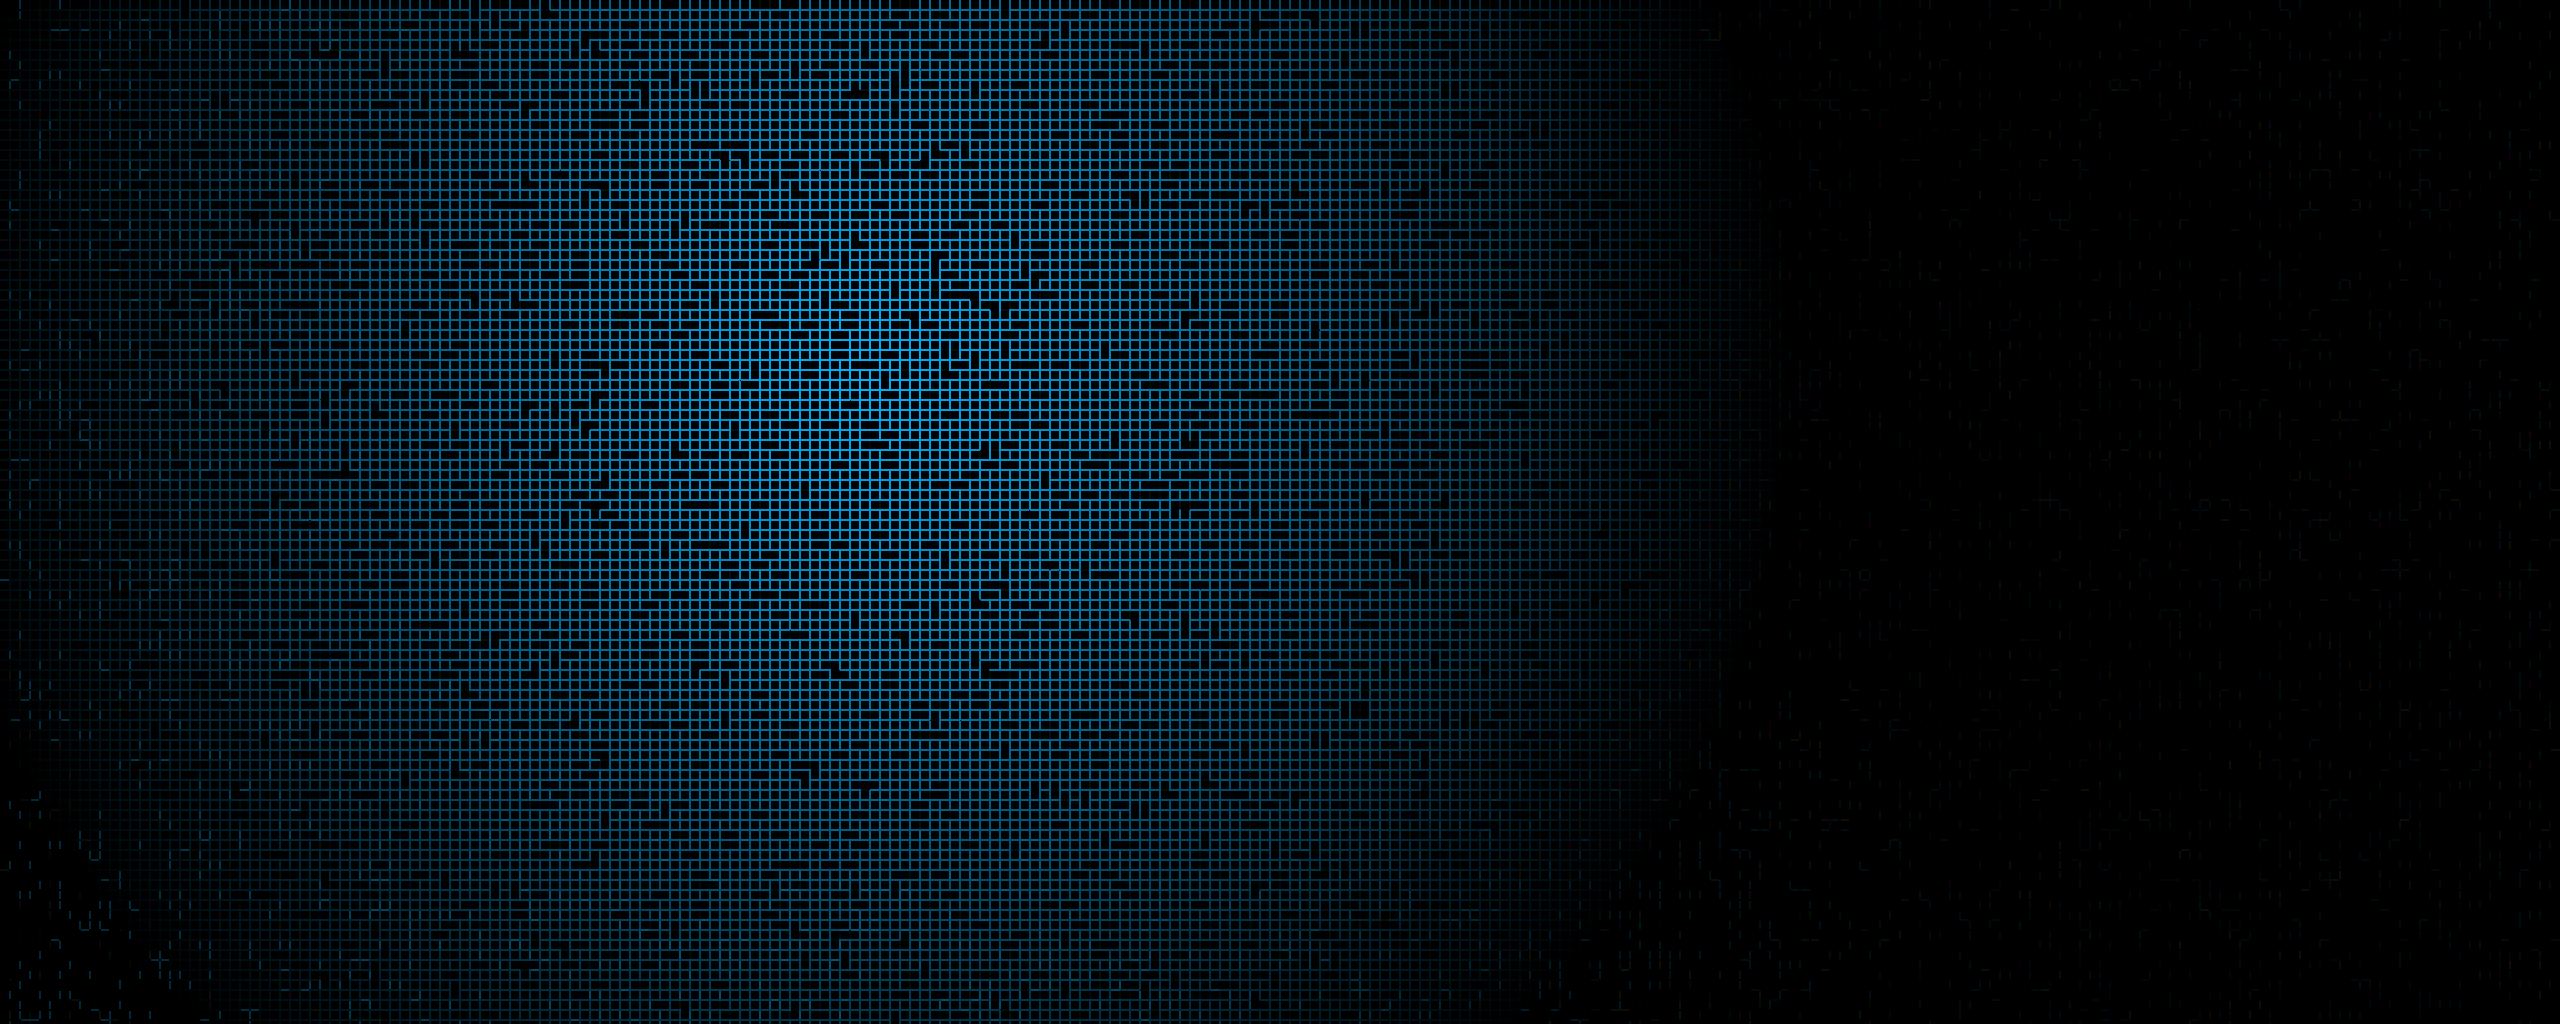 49 Black And Blue Hd Wallpaper On Wallpapersafari